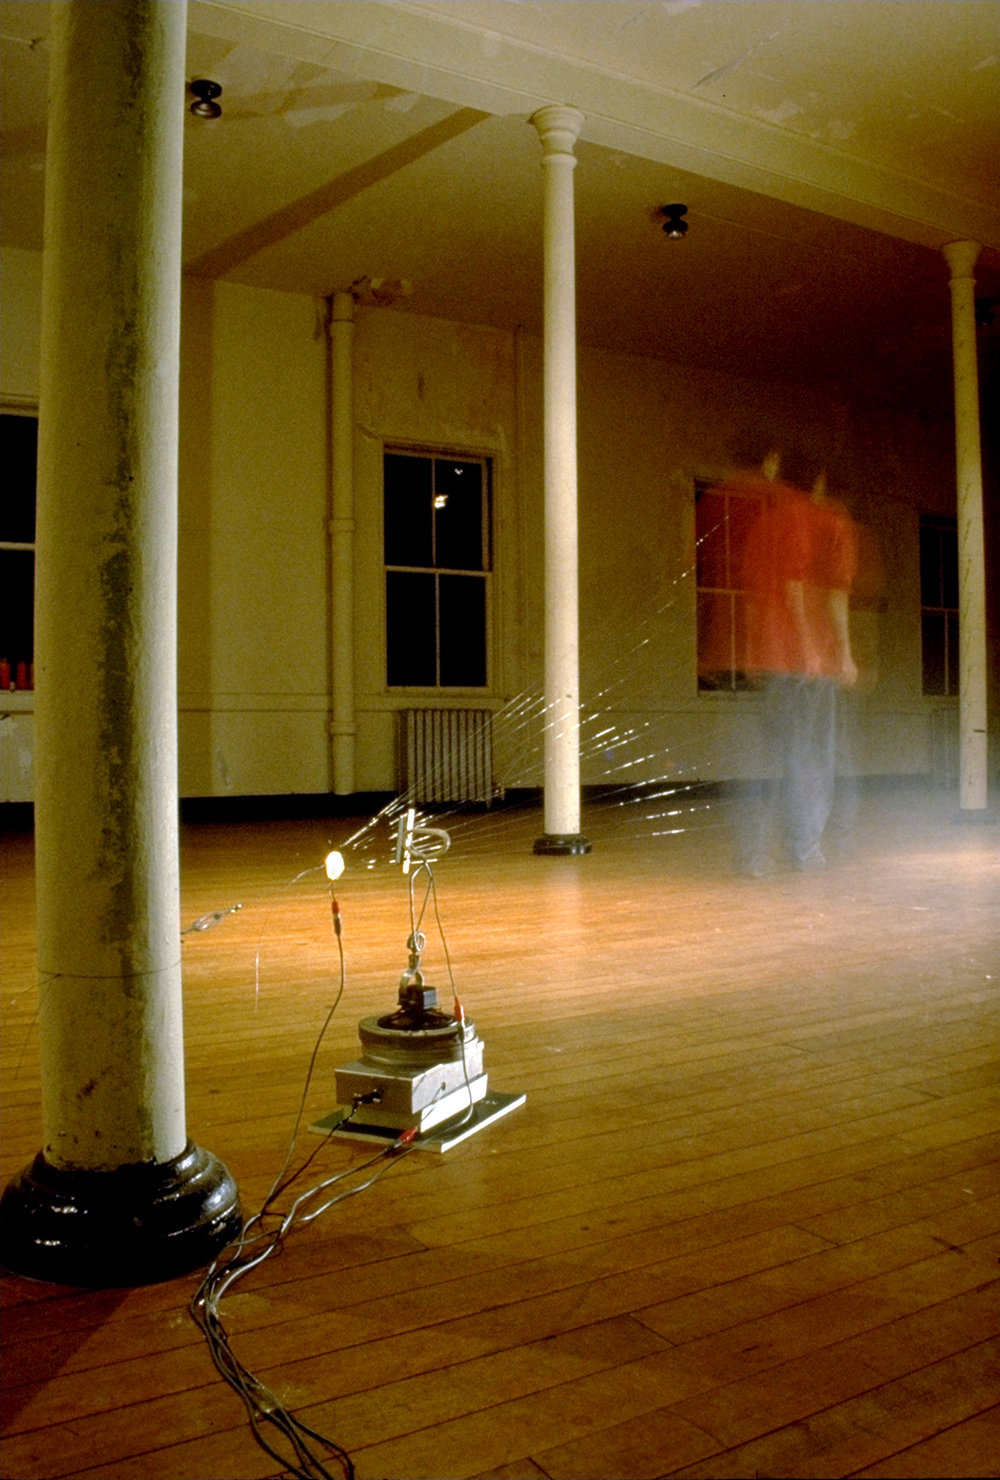 Installation view at the Headlands Center for the Arts, Sausalito, CA (July, 1995). Mixed media, custom electronics, sound (dimensions variable)